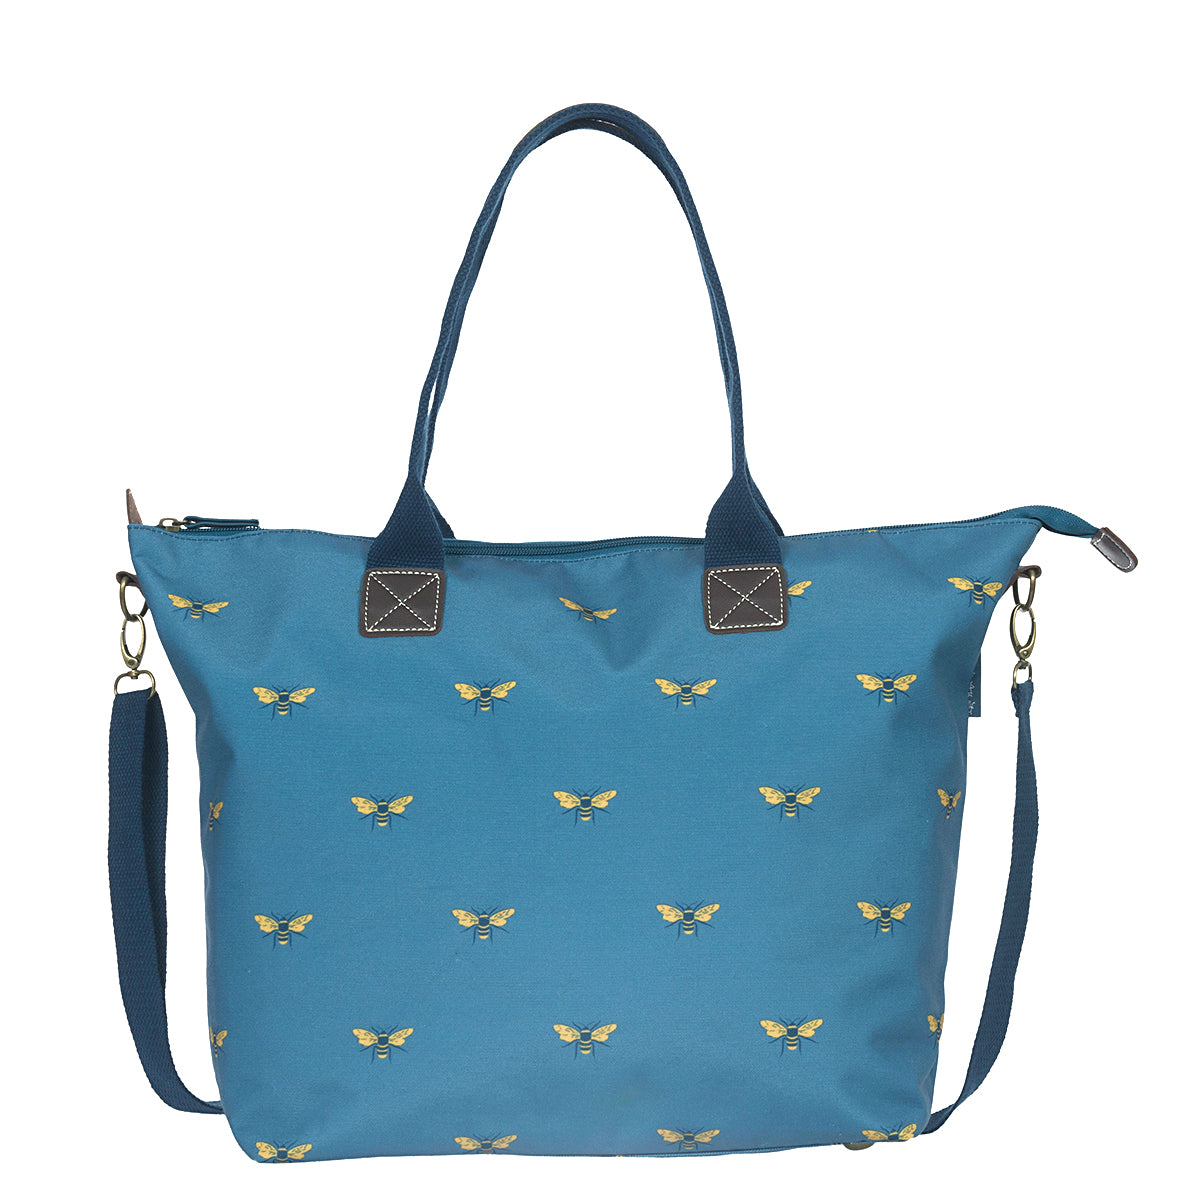 Bees Teal Oundle Bag by Sophie Allport